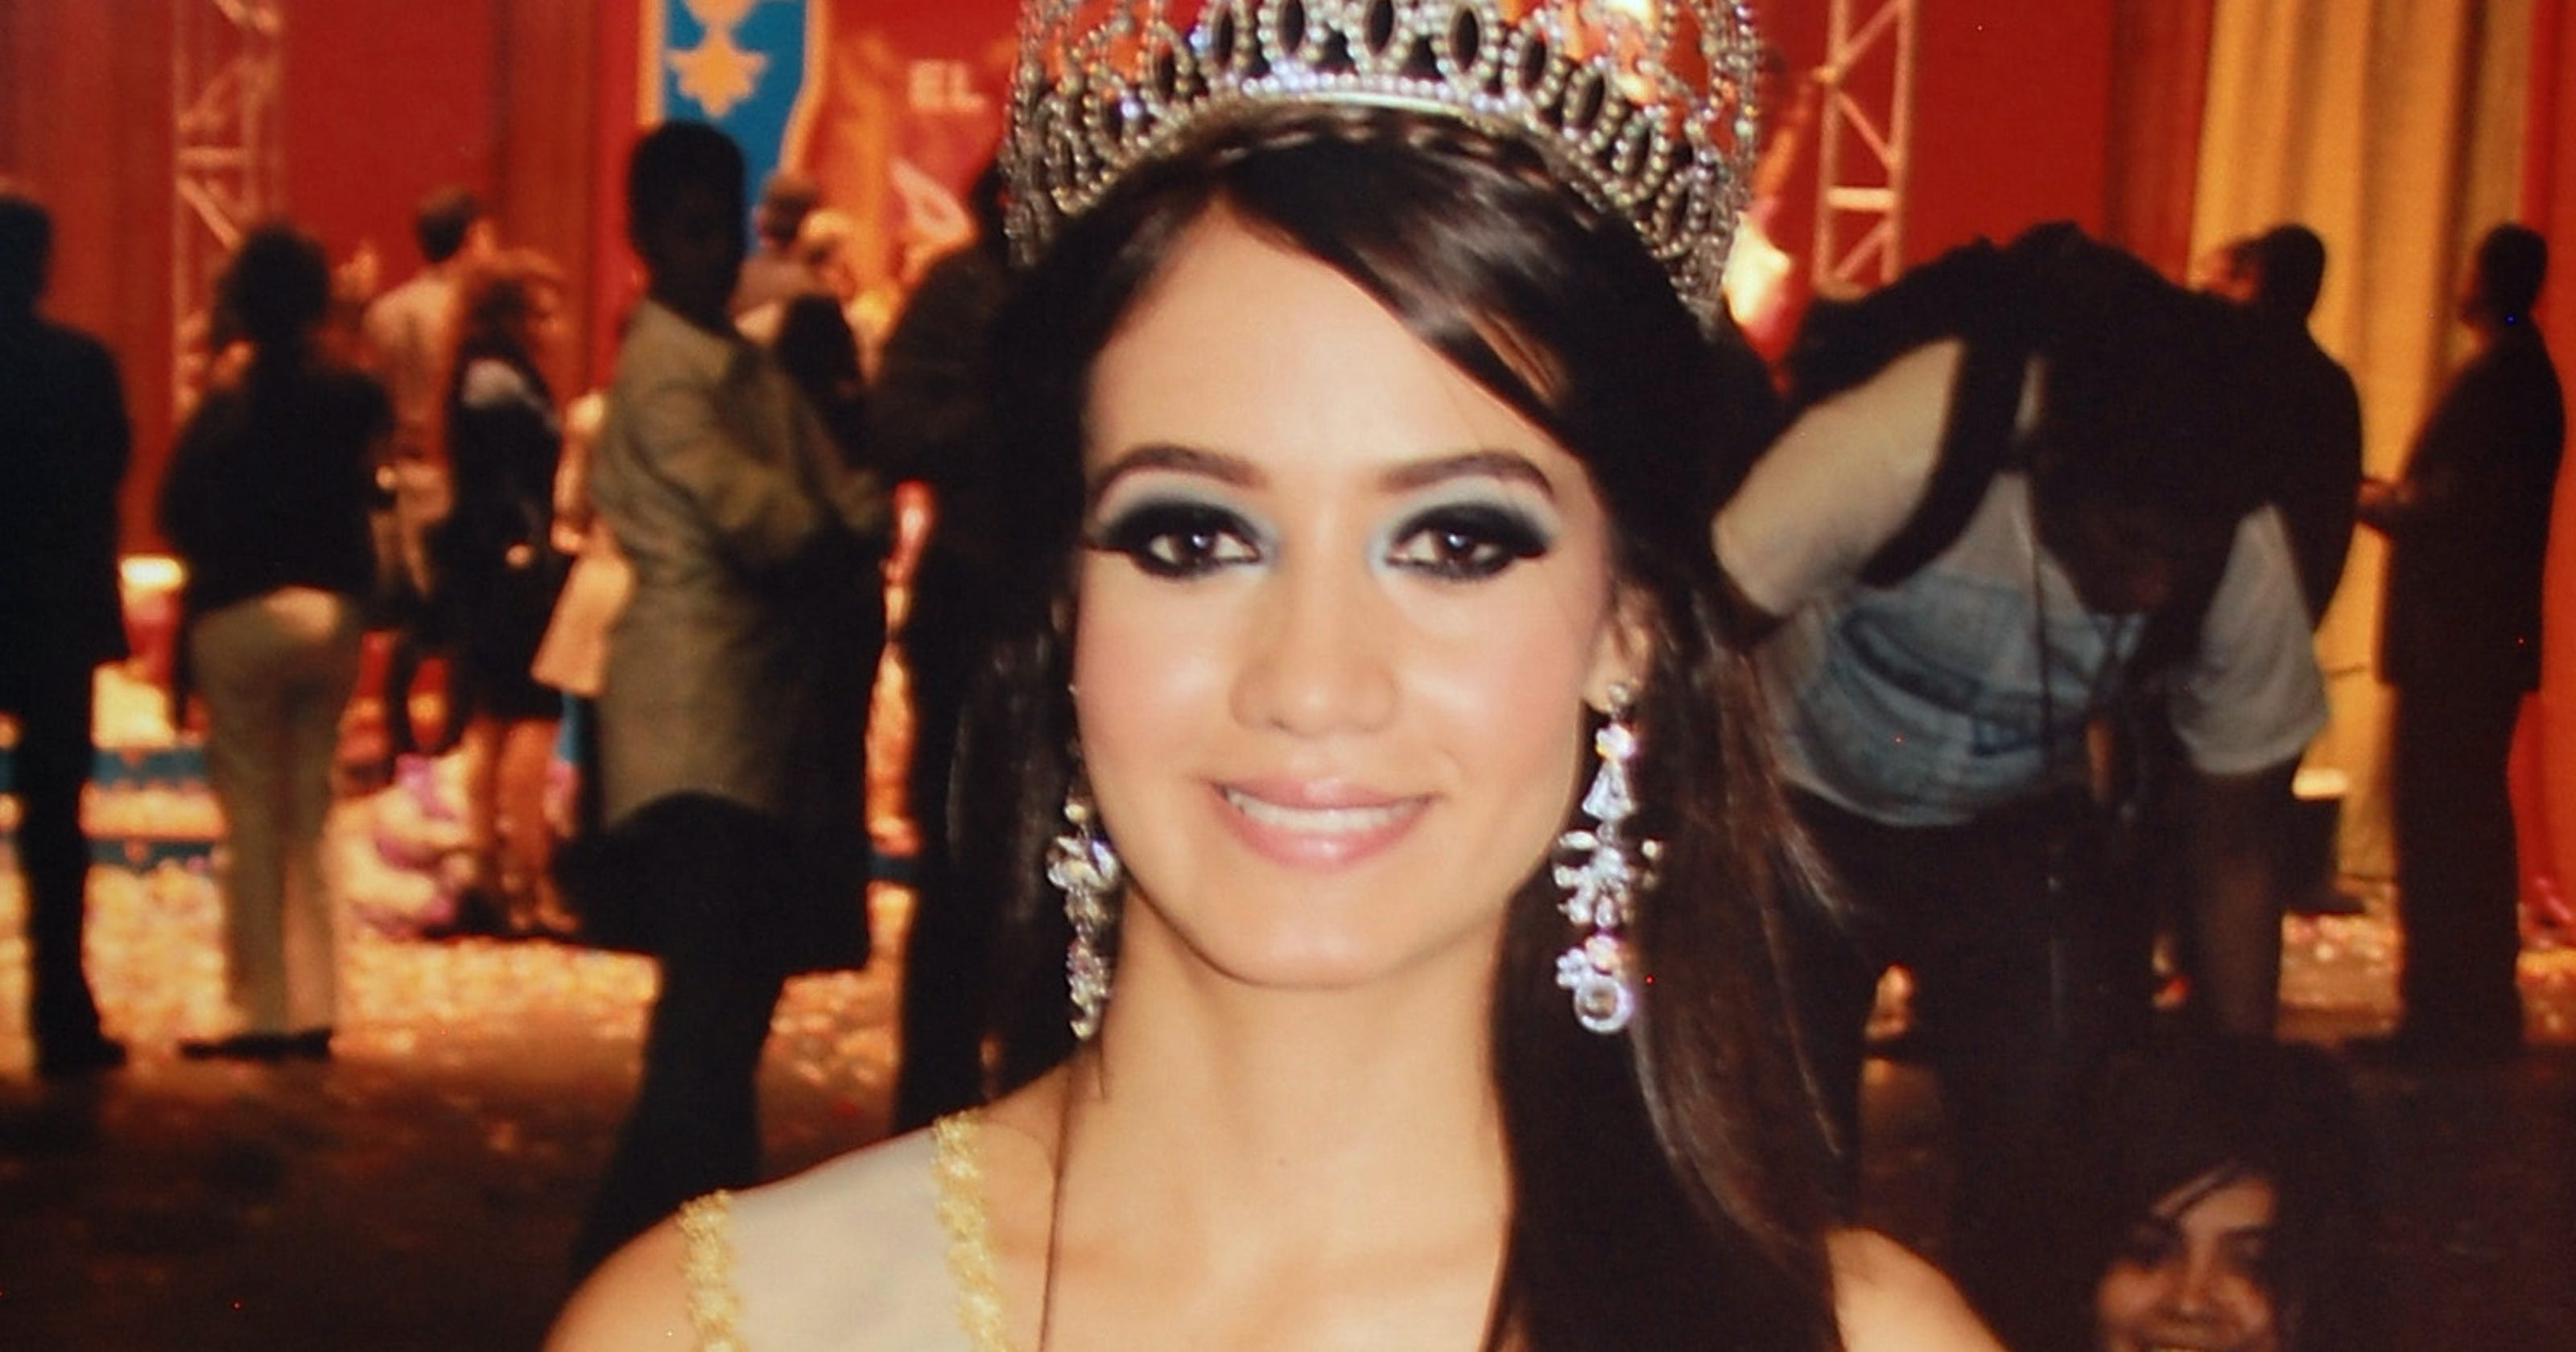 Beauty queens and drug wars collide in Mexico